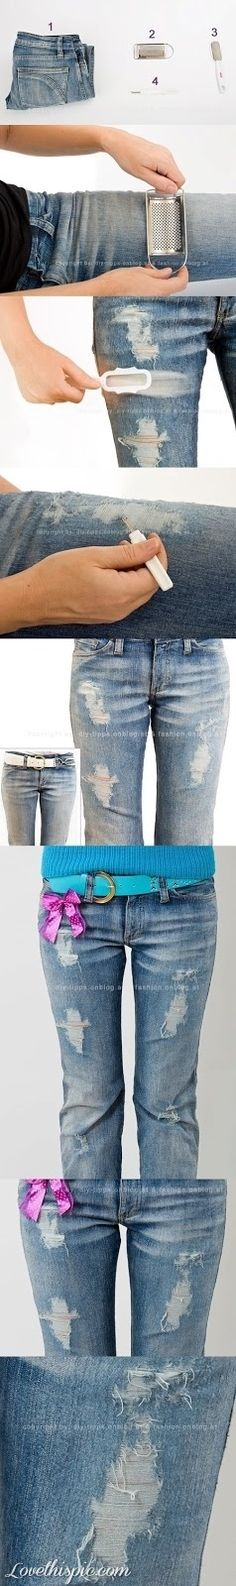 DIY Ripped Jeans Look